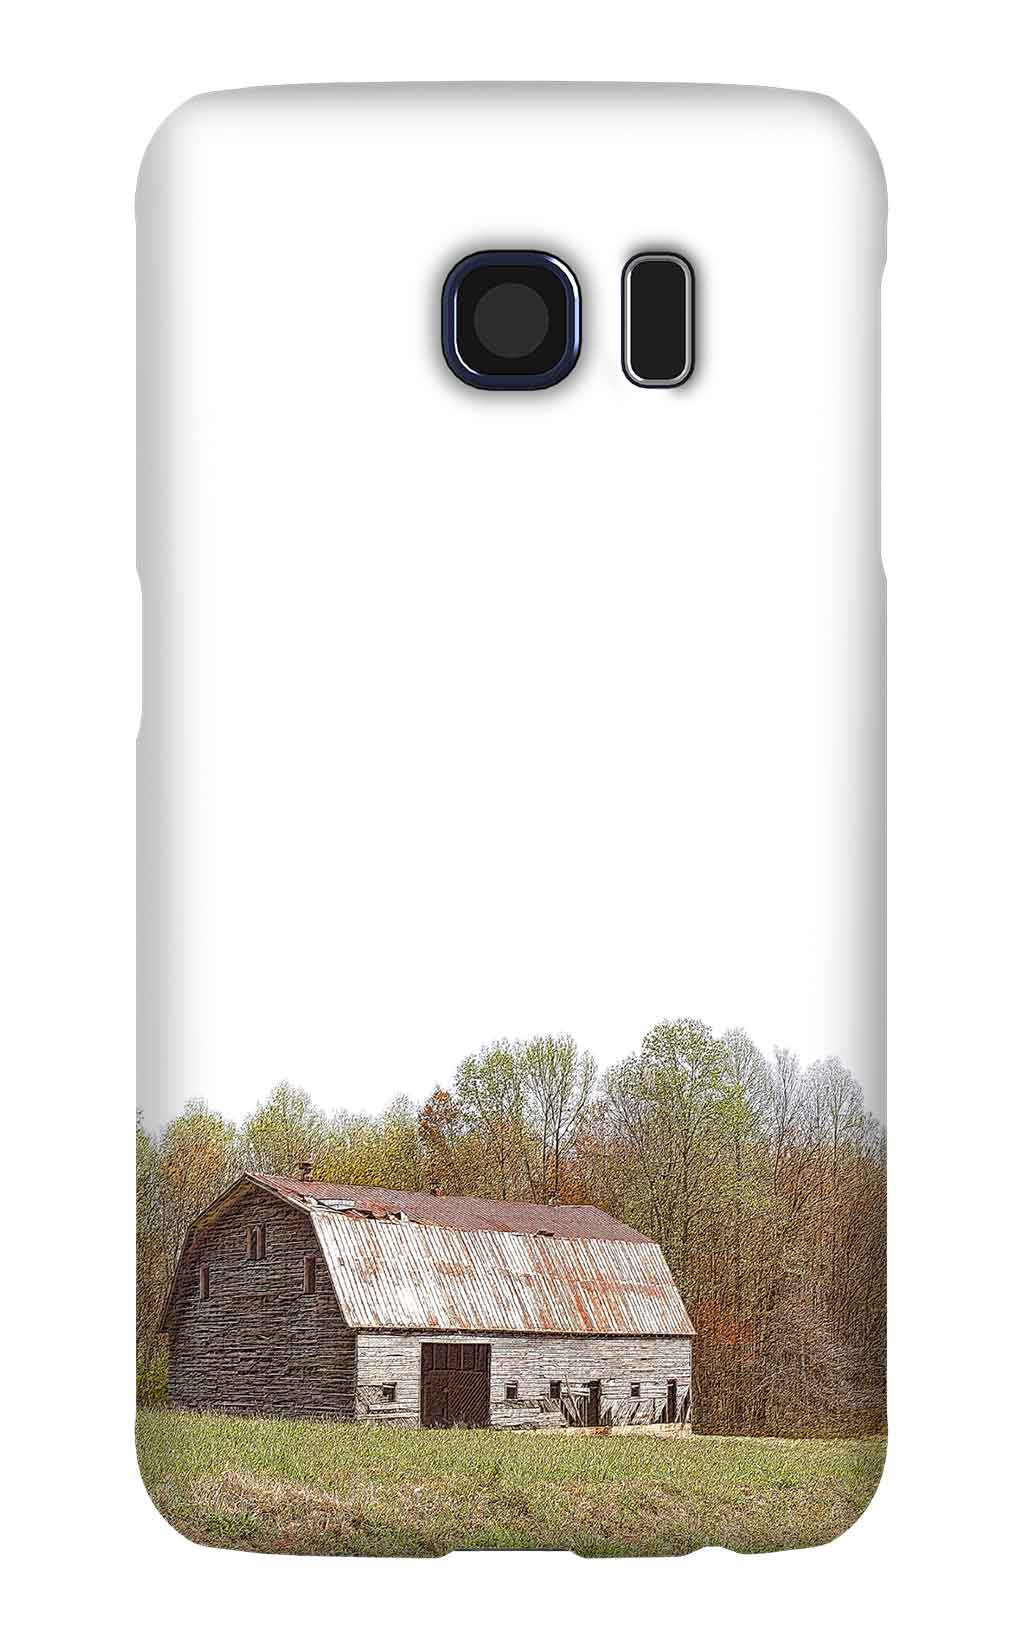 Product, Cellphone Case: Amityville - Gabled wooden barn in front of fall foliage